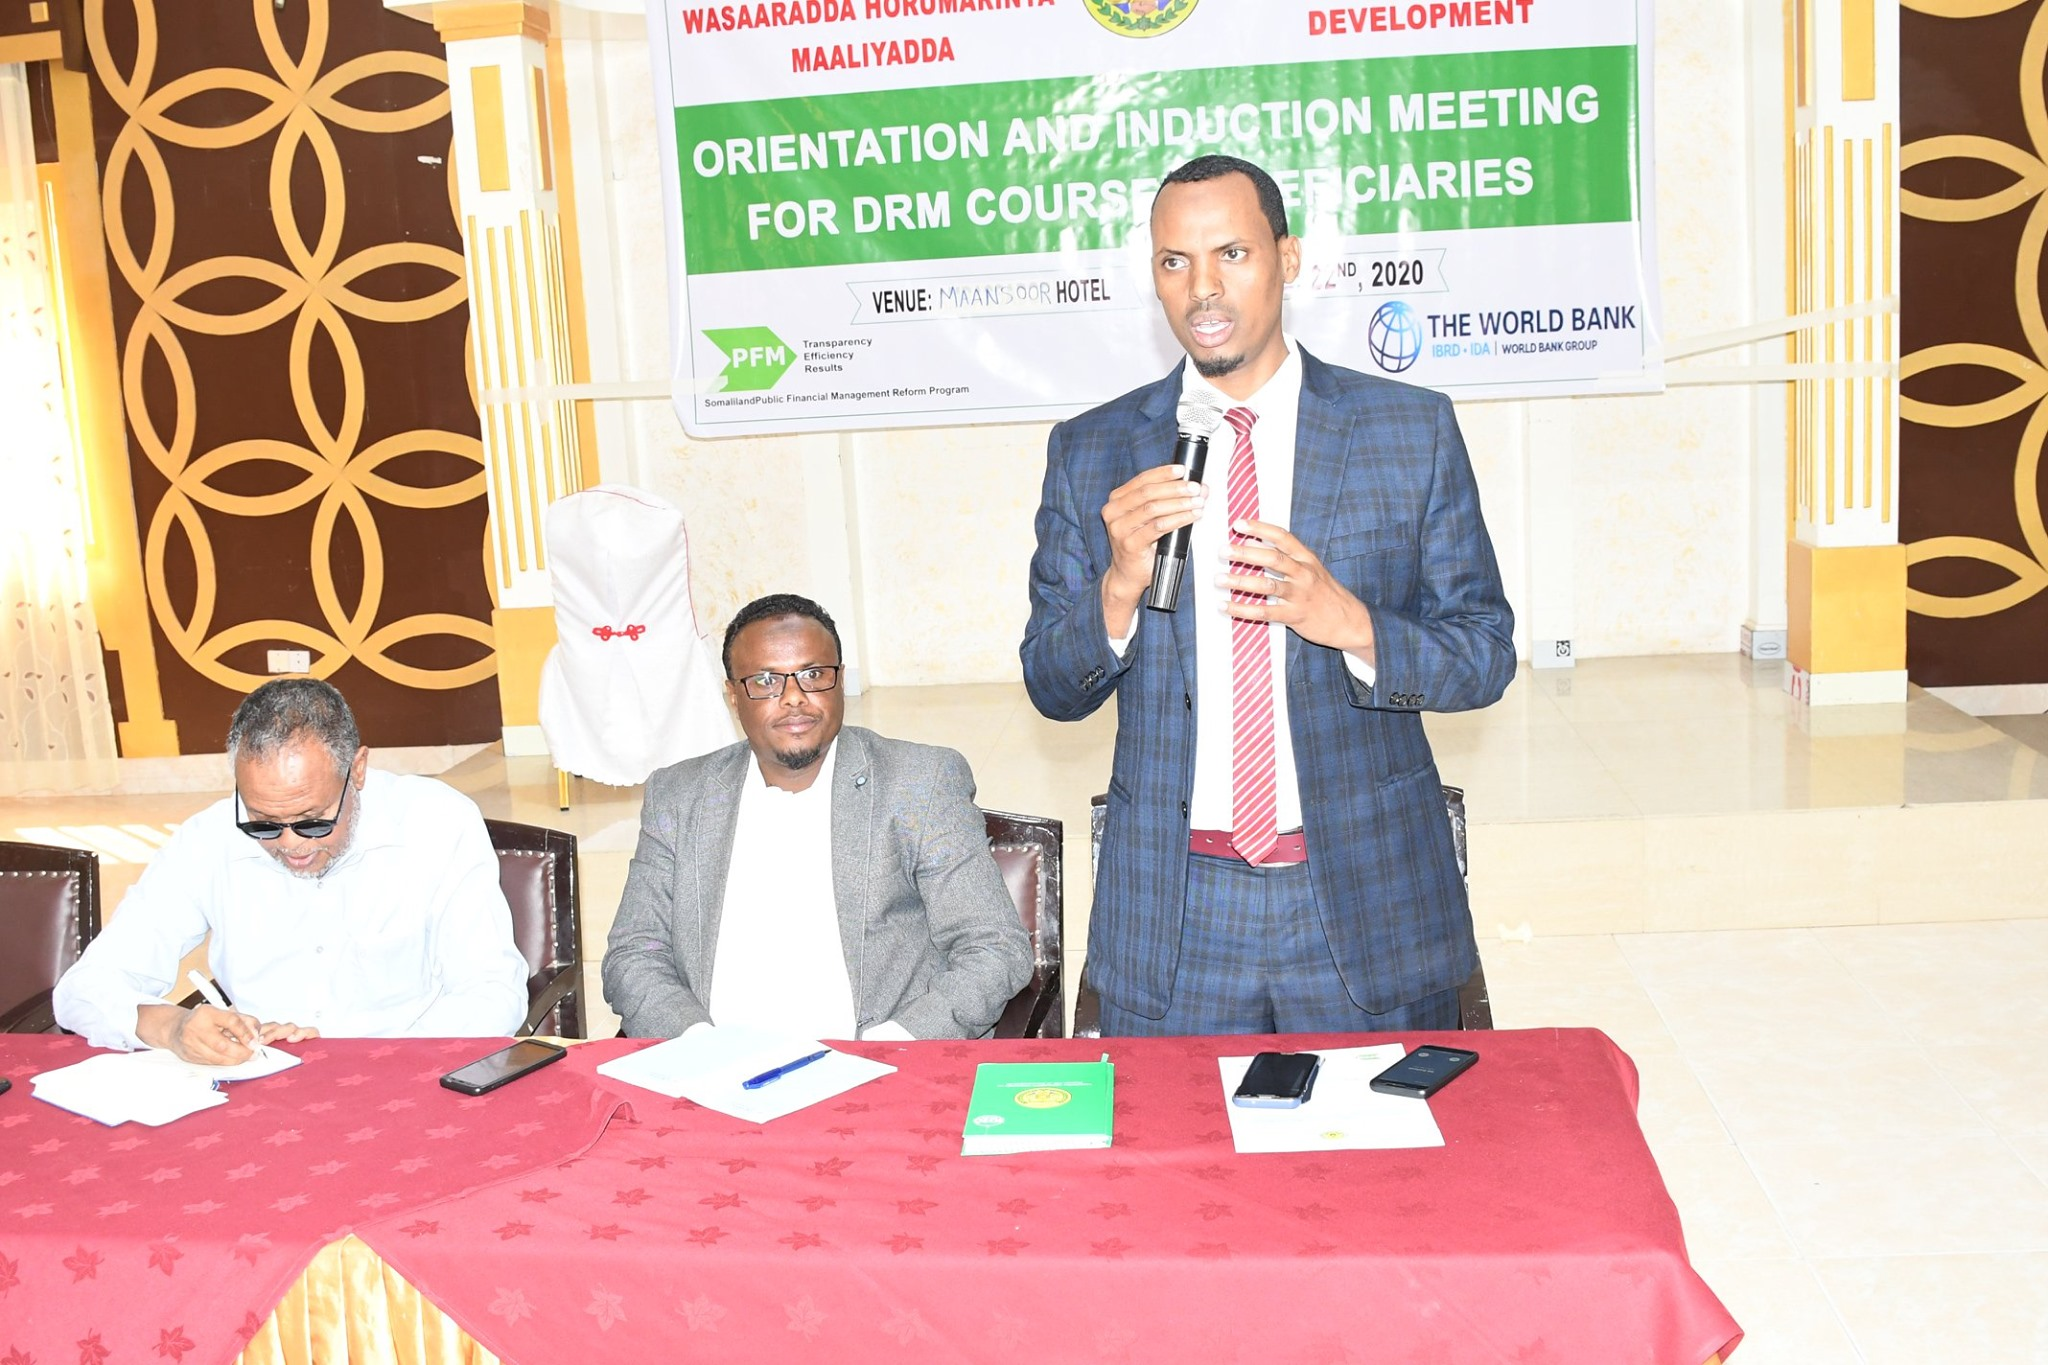 Orientation and Induction Session for Domestic Revenue Mobilization (DRM) Training Course Beneficiaries